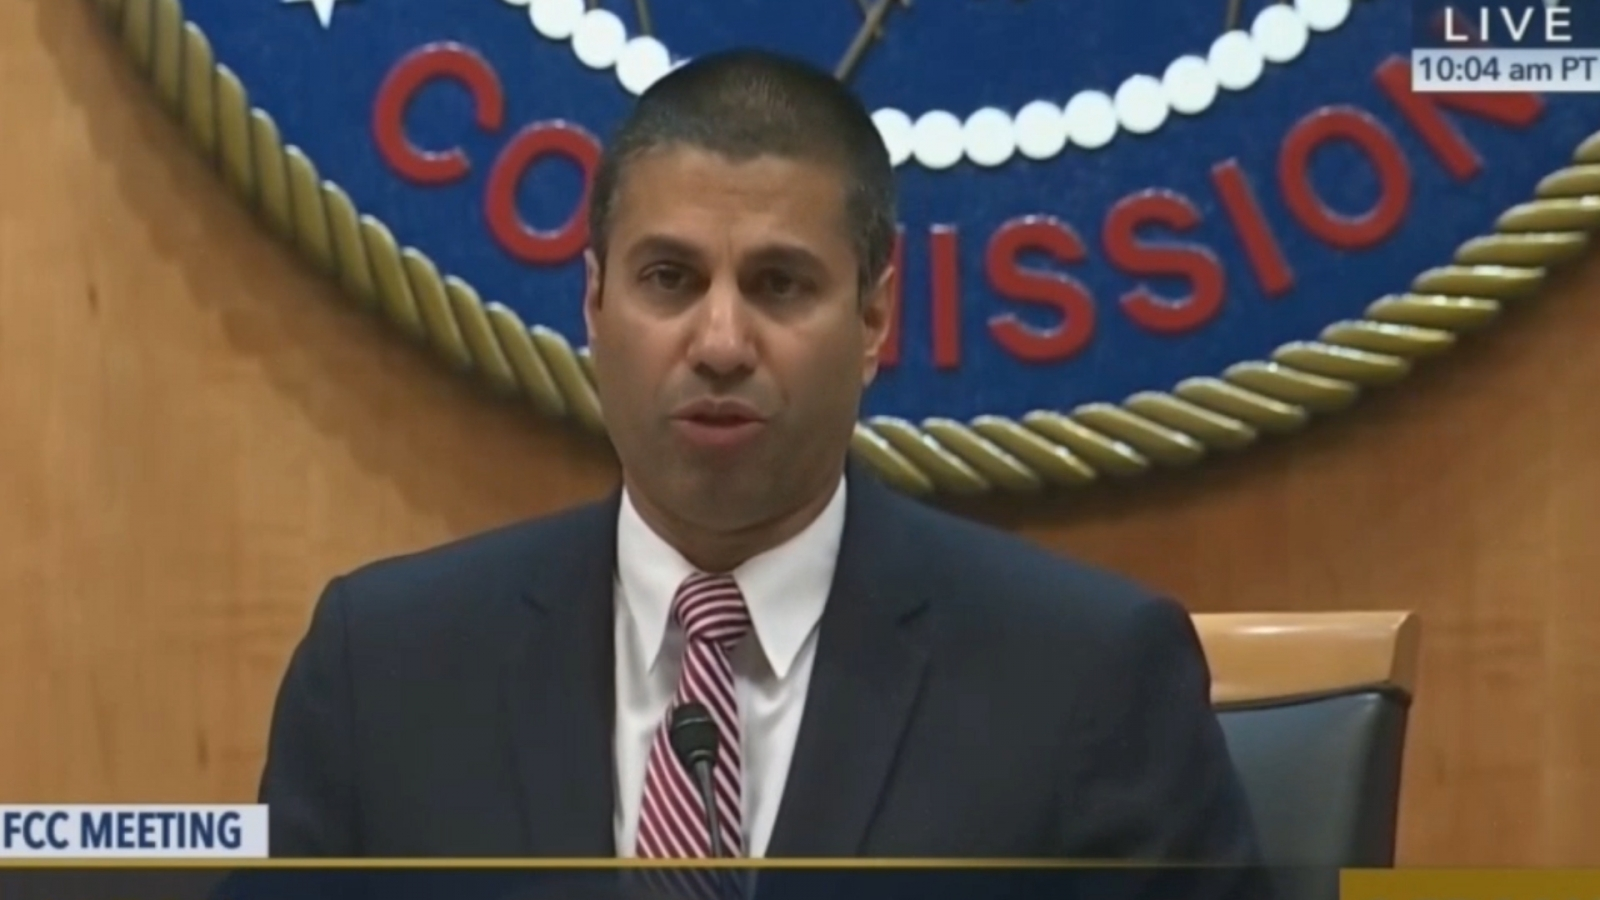 fcc-chairman-ajit-pai-defends-repeal-of-net-neutrality-rules-on-day-of-crucial-vote